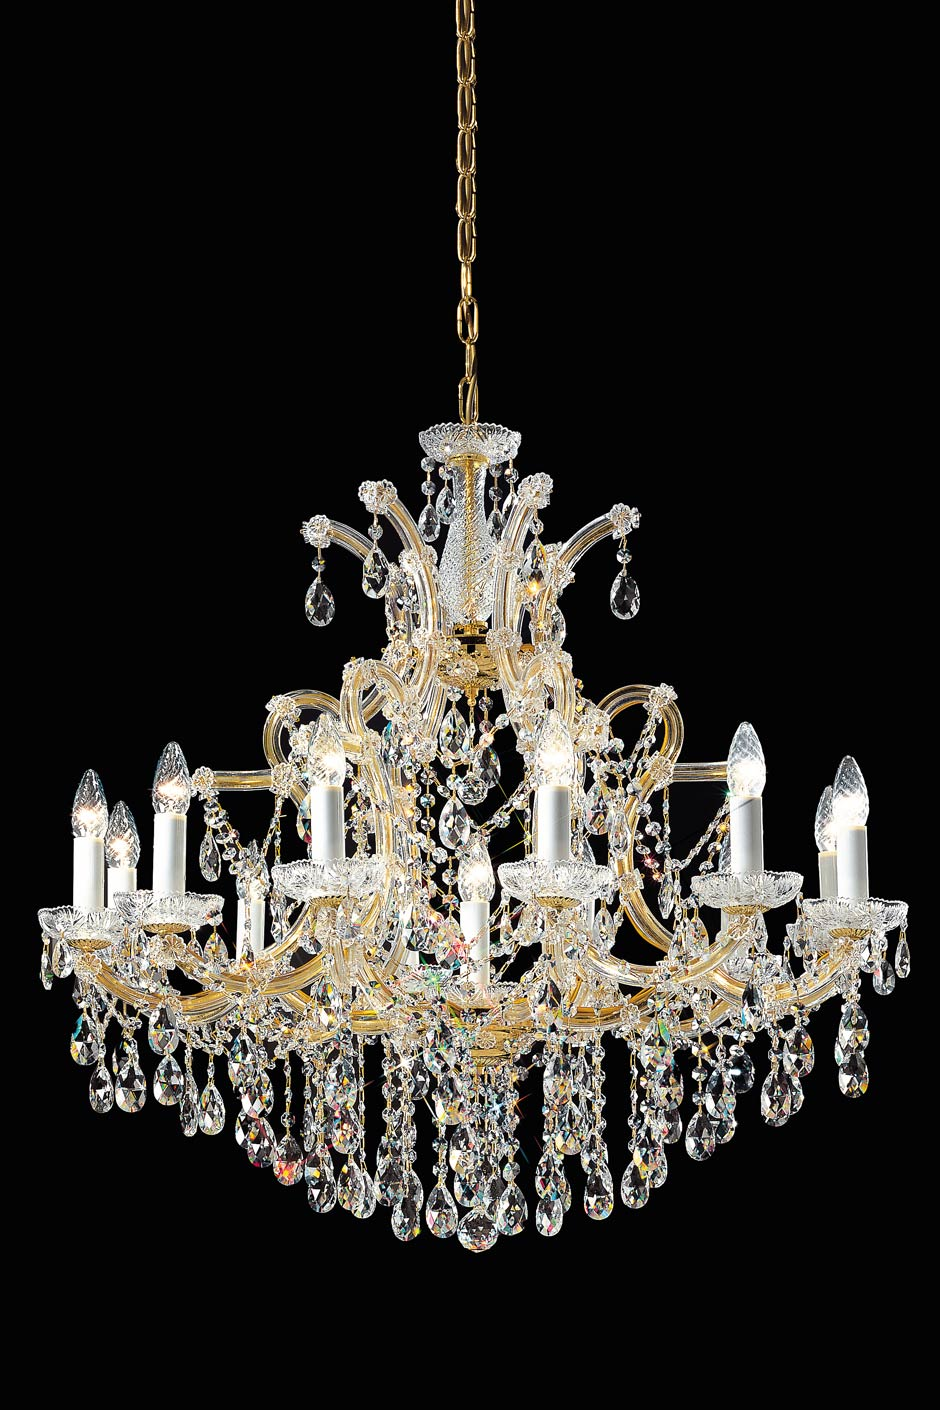 13-light gold-plated-metal and Bohemian crystal chandelier ...